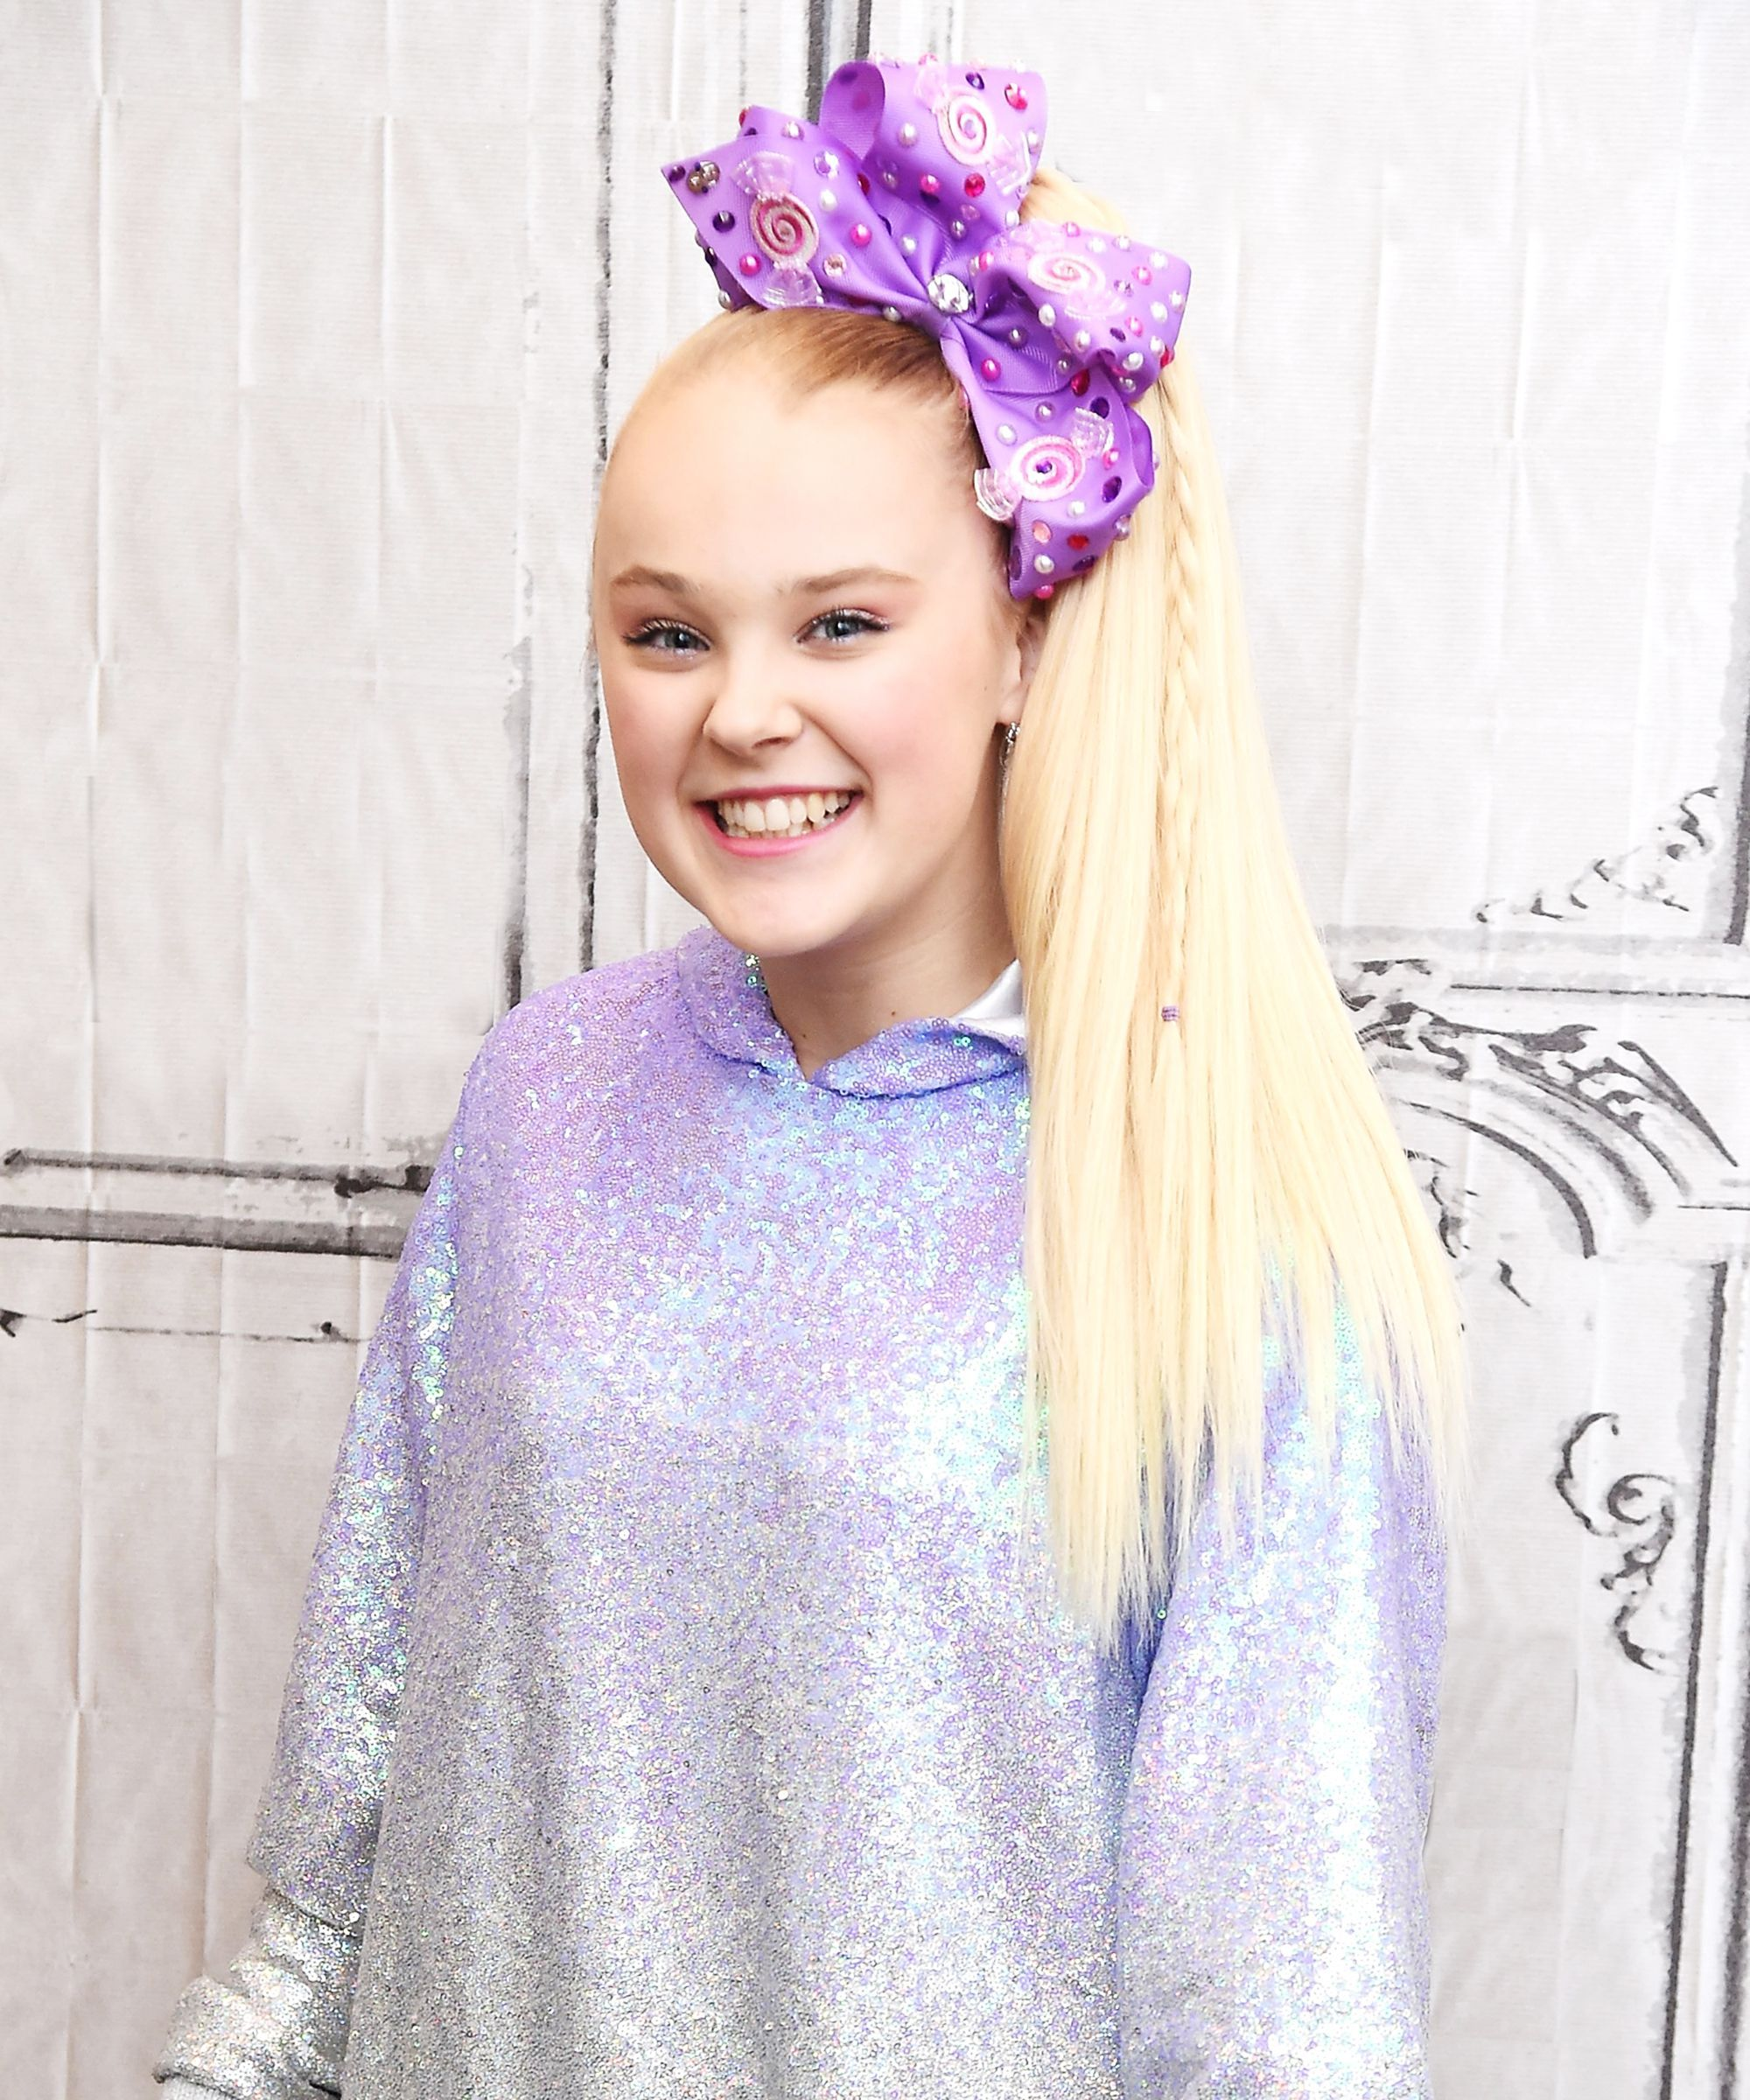 Jojo Siwa Speaks Out After Her Claire S Makeup Kit Was Recalled Jojo Siwa Jojo Siwa Hair Jojo Siwa Instagram